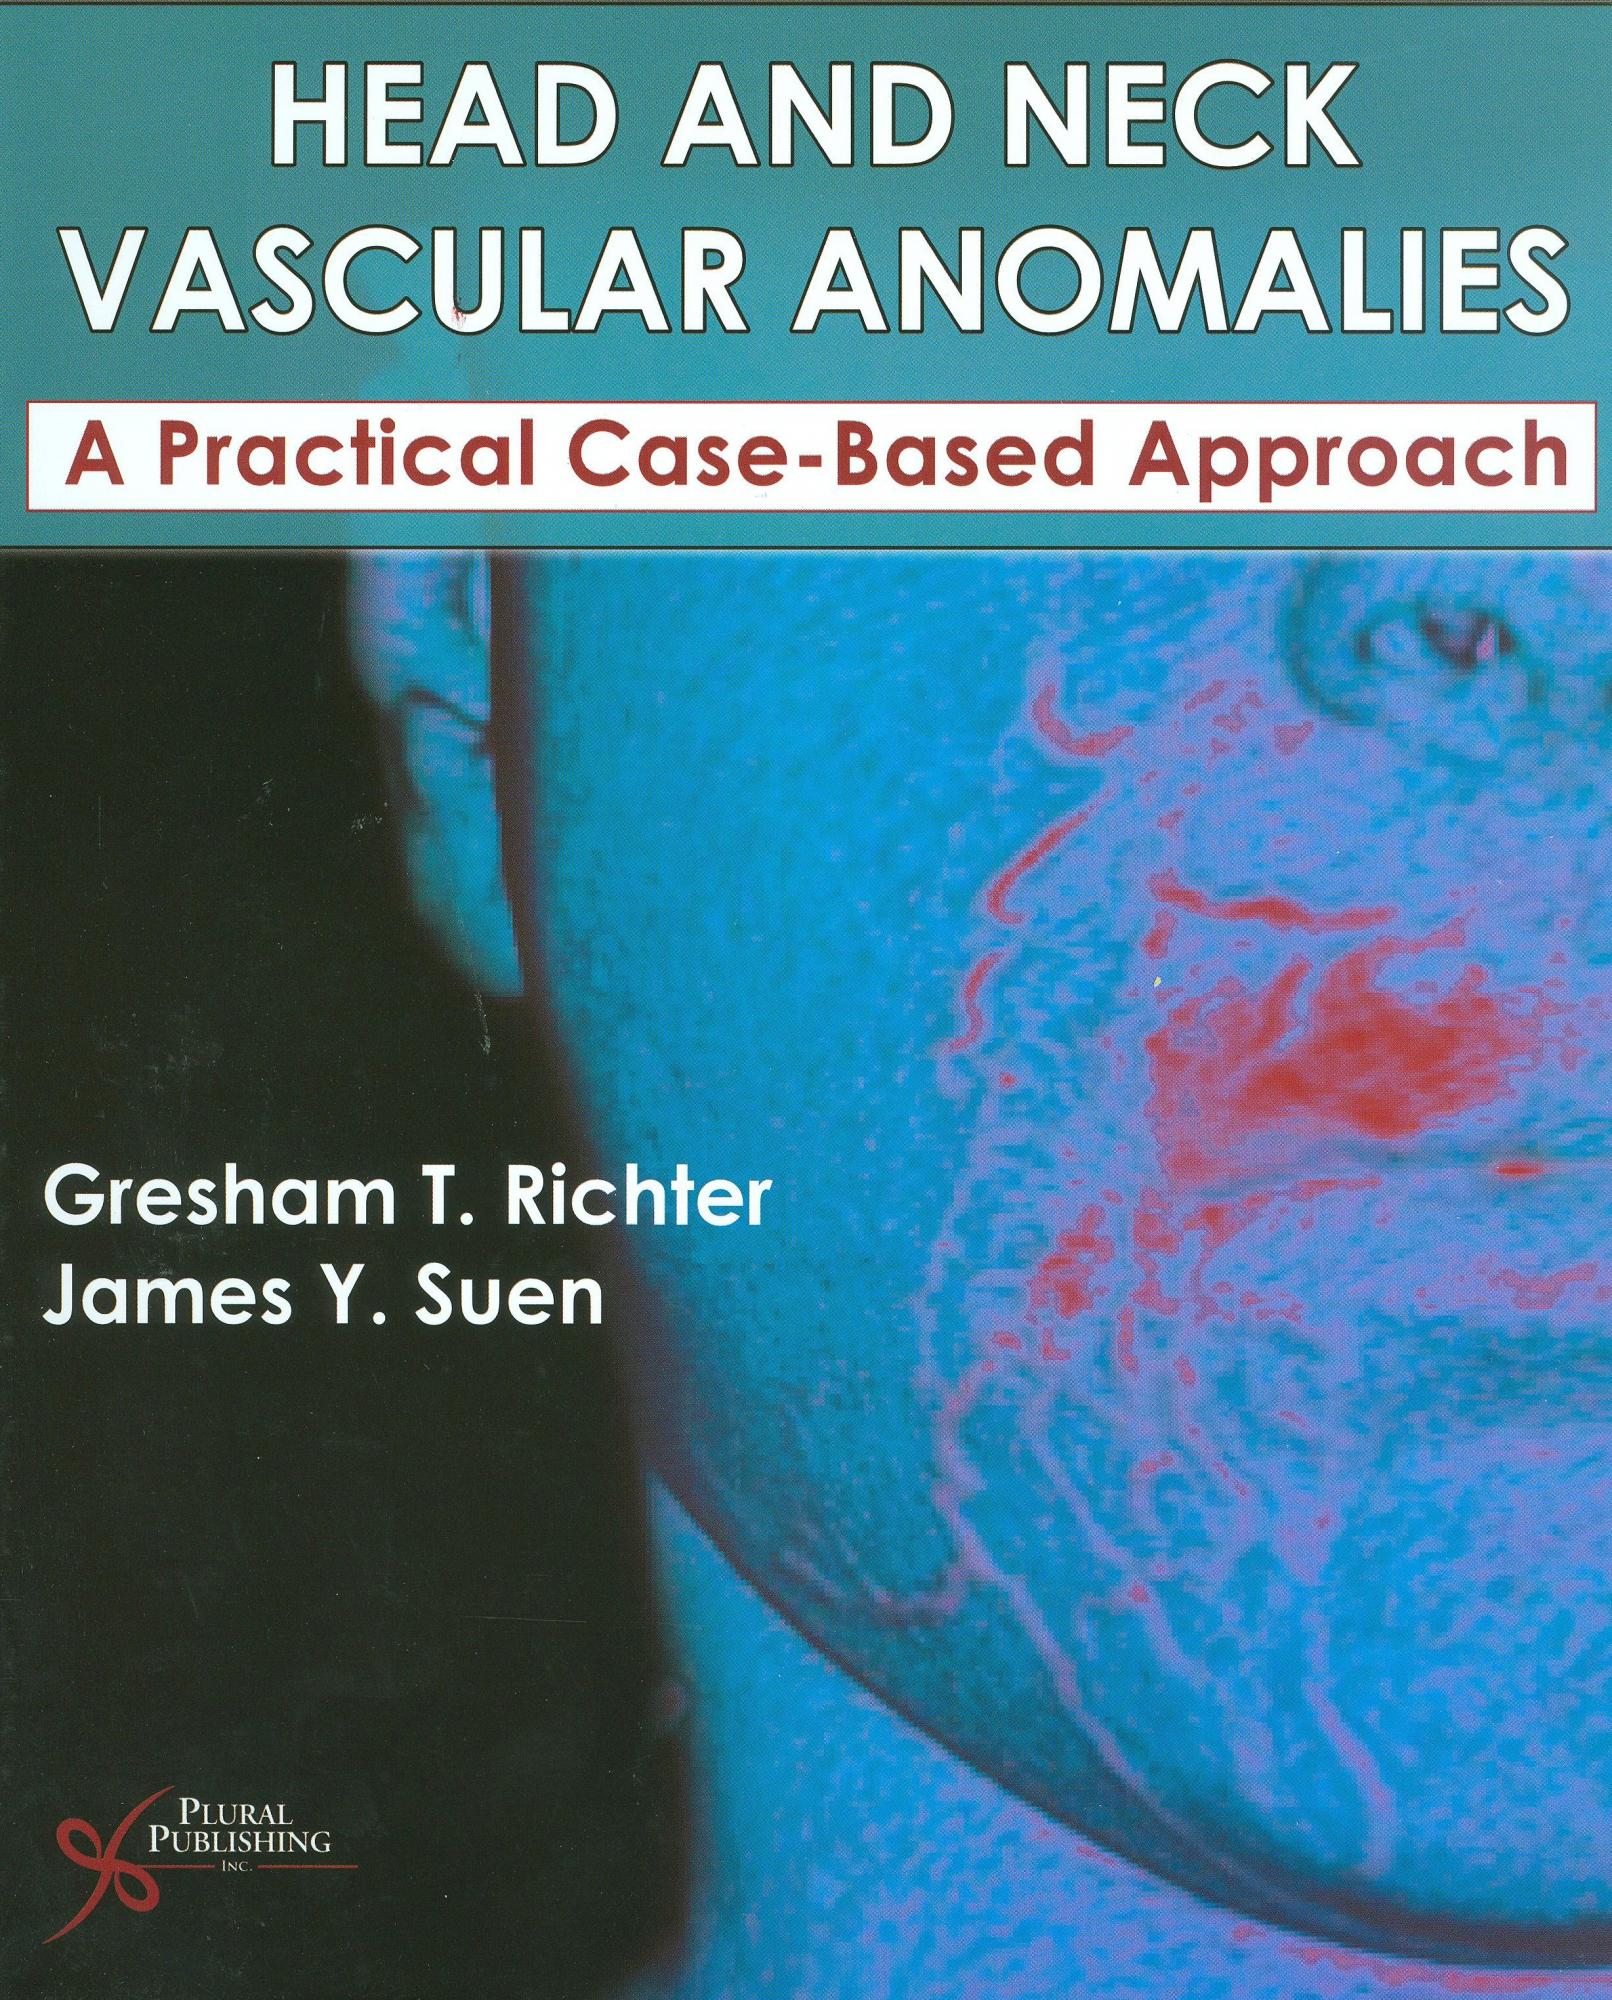 Head and Neck Vascular Anomalies: A Practical Case-based Approach